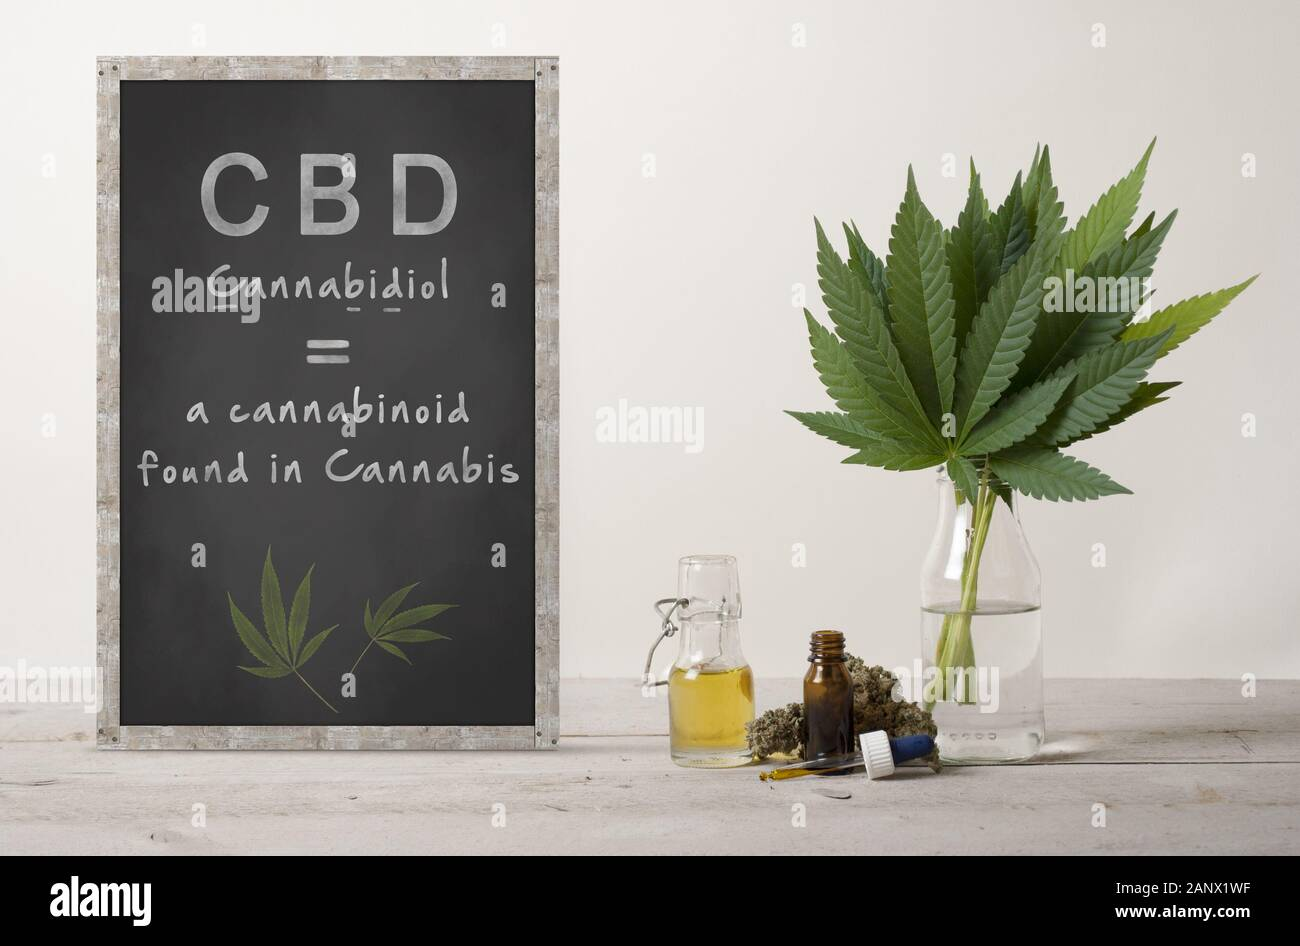 rustic blackboard with text cannabidiol and marujuana cannabis sativa weed leaves bouquet, flower bud and CBD oil in glass dropper bottle, on wooden c Stock Photo